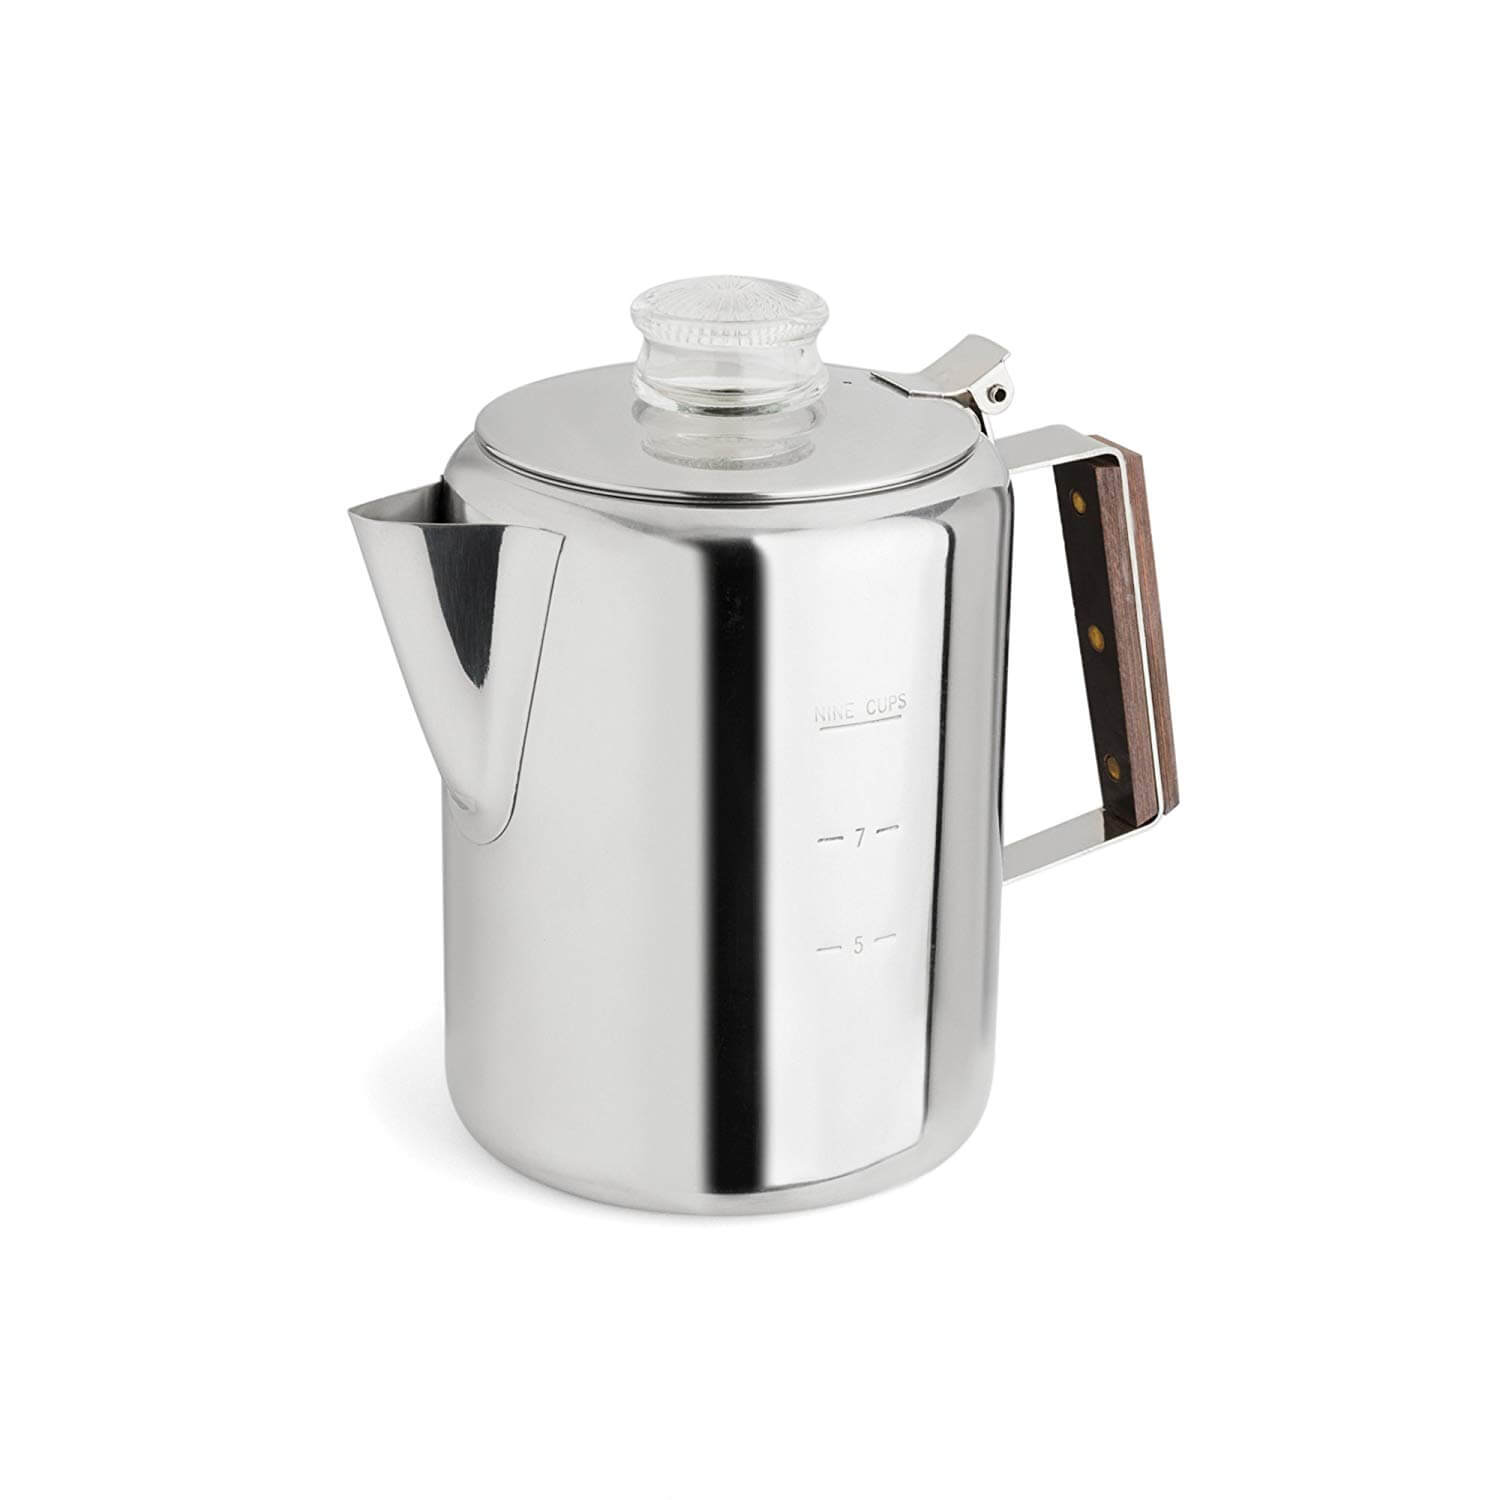 TOPS 55704 Rapid Brew Stainless Steel Stovetop Coffee Percolator